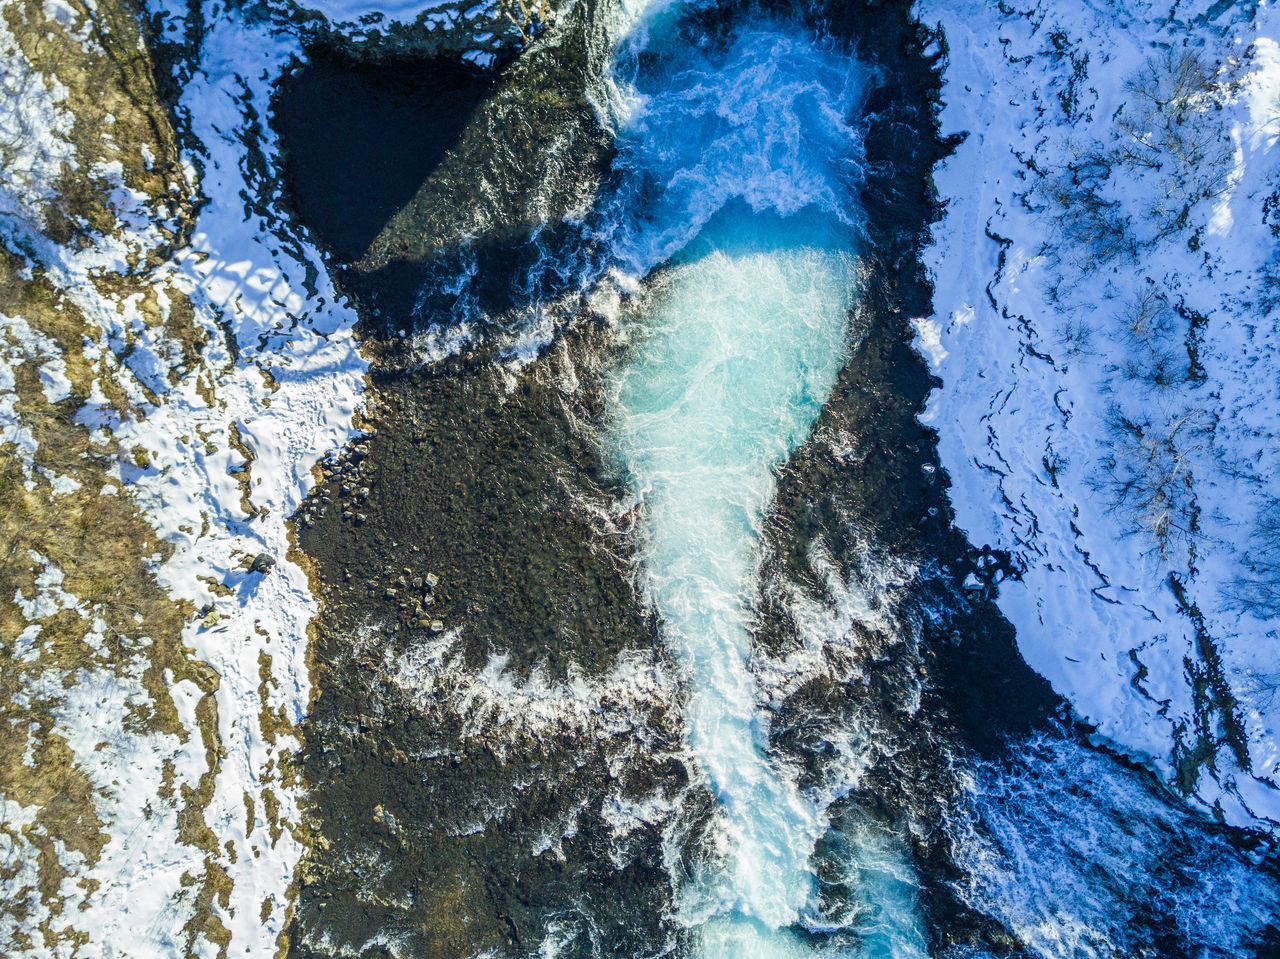 A self portrait. But I wonder if you can find me... Backgrounds Beauty In Nature Blue Day Dji Falls Flying Flying High From Above  Landscape Mavic Pro Motion Nature No People Outdoors Power In Nature Scenics Self Portrait Water Waterfall Winter